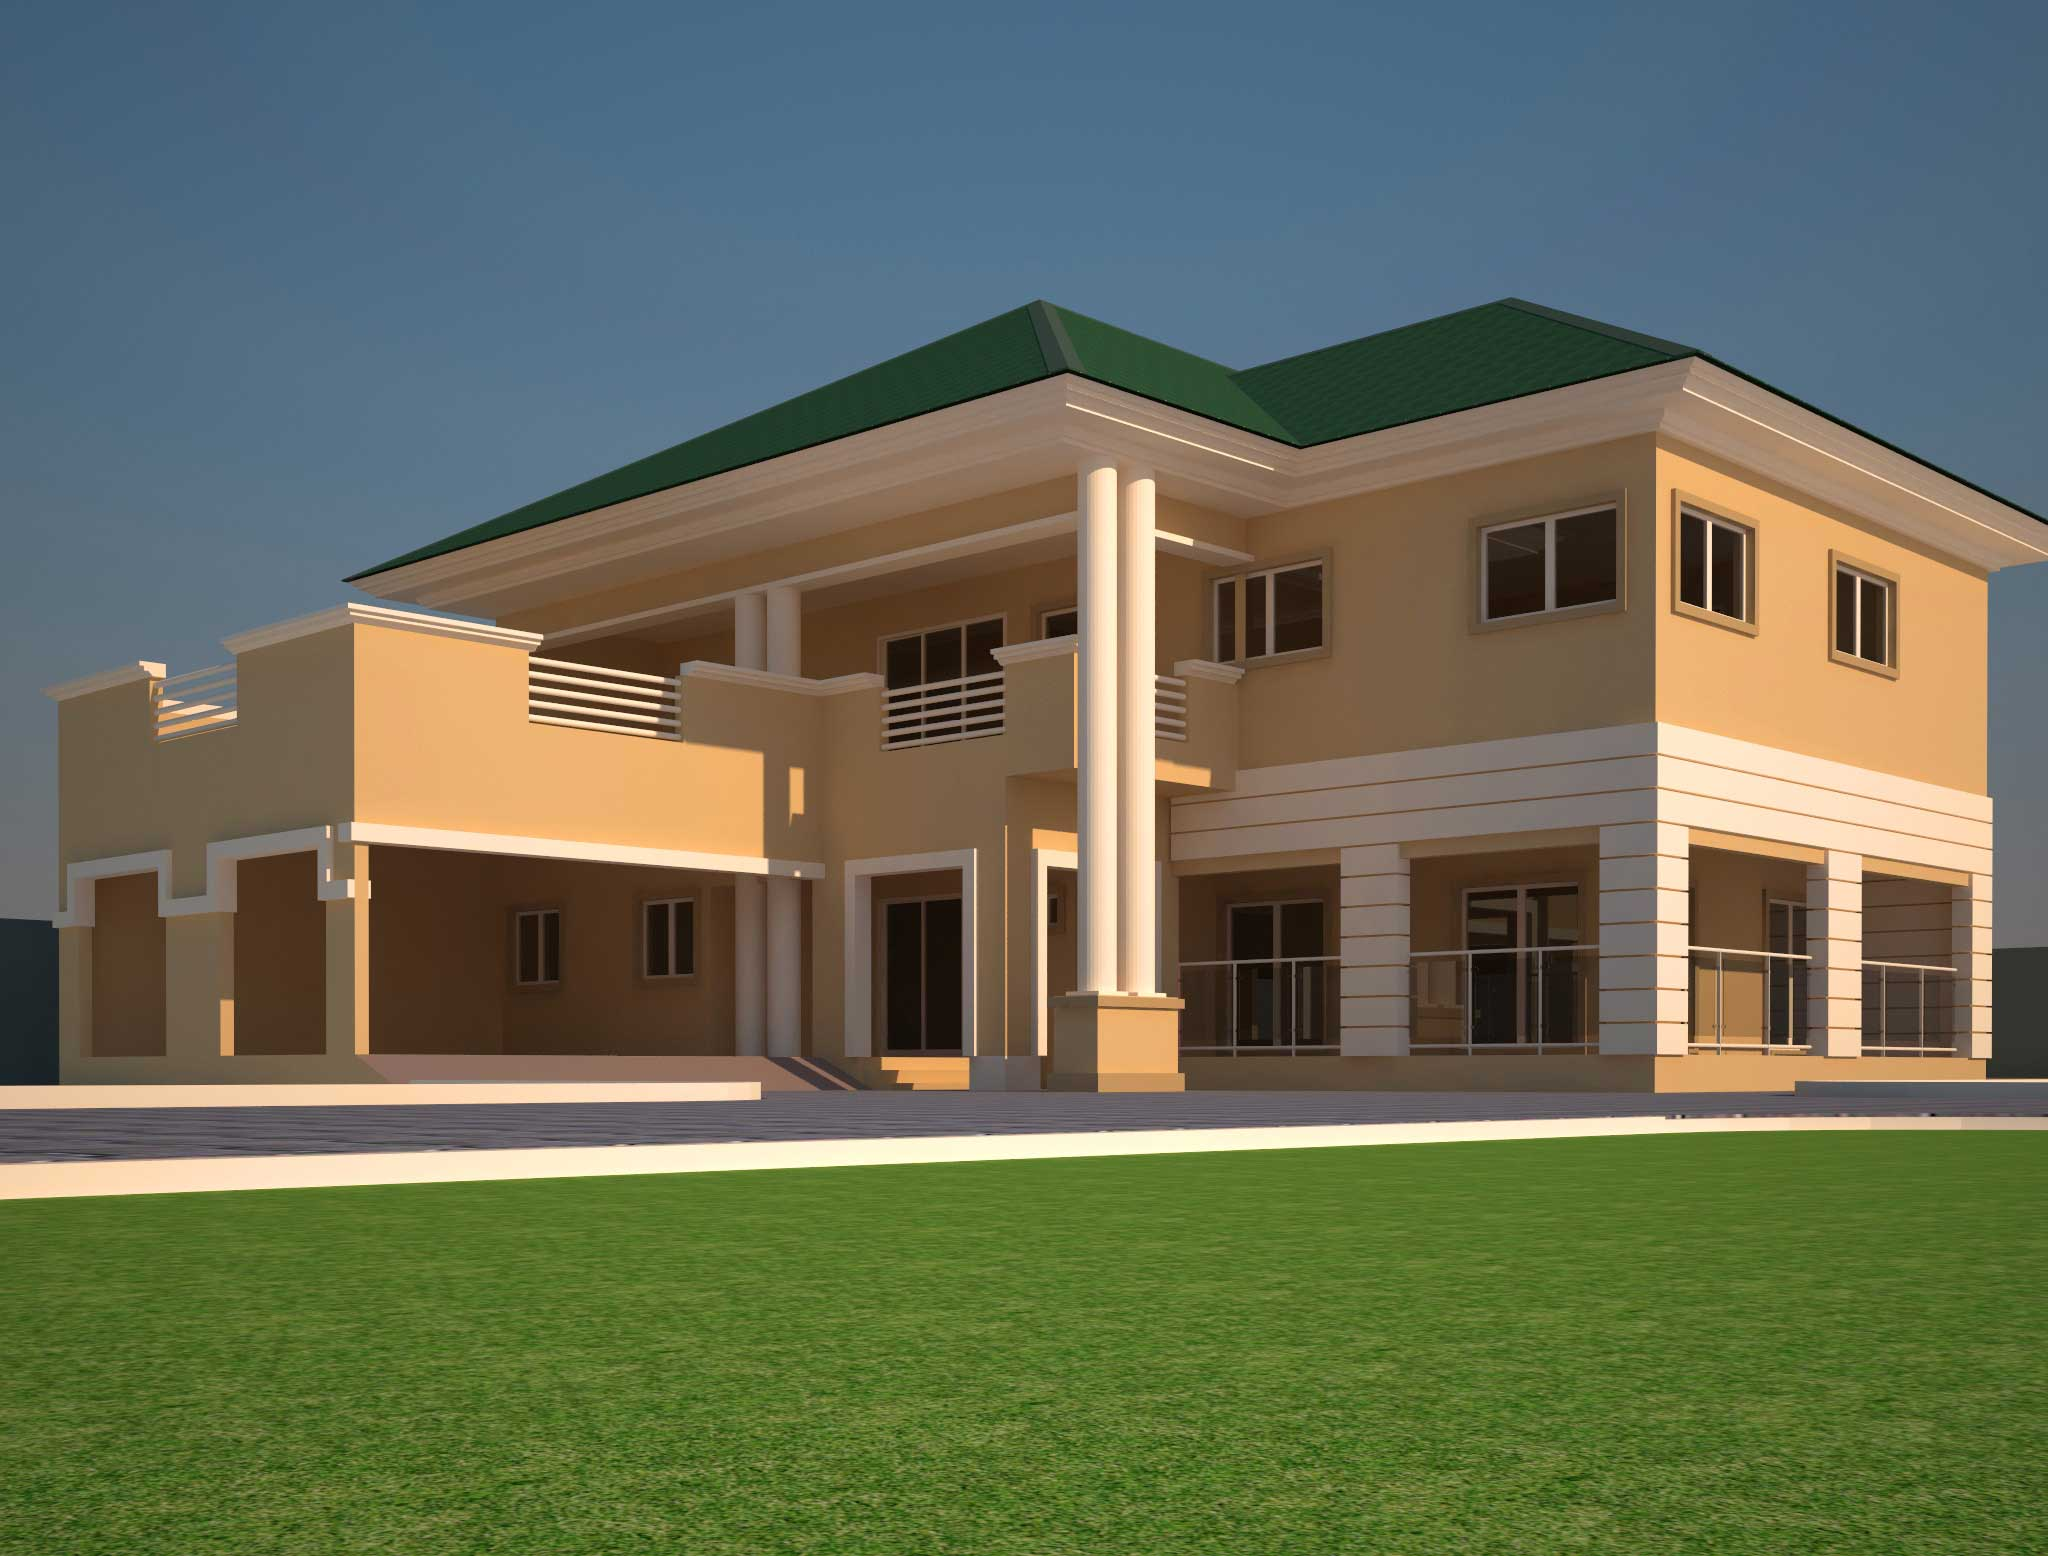 House Plans Ghana Bedroom Home Plans Blueprints 72447,Teal And Brown Color Combinations